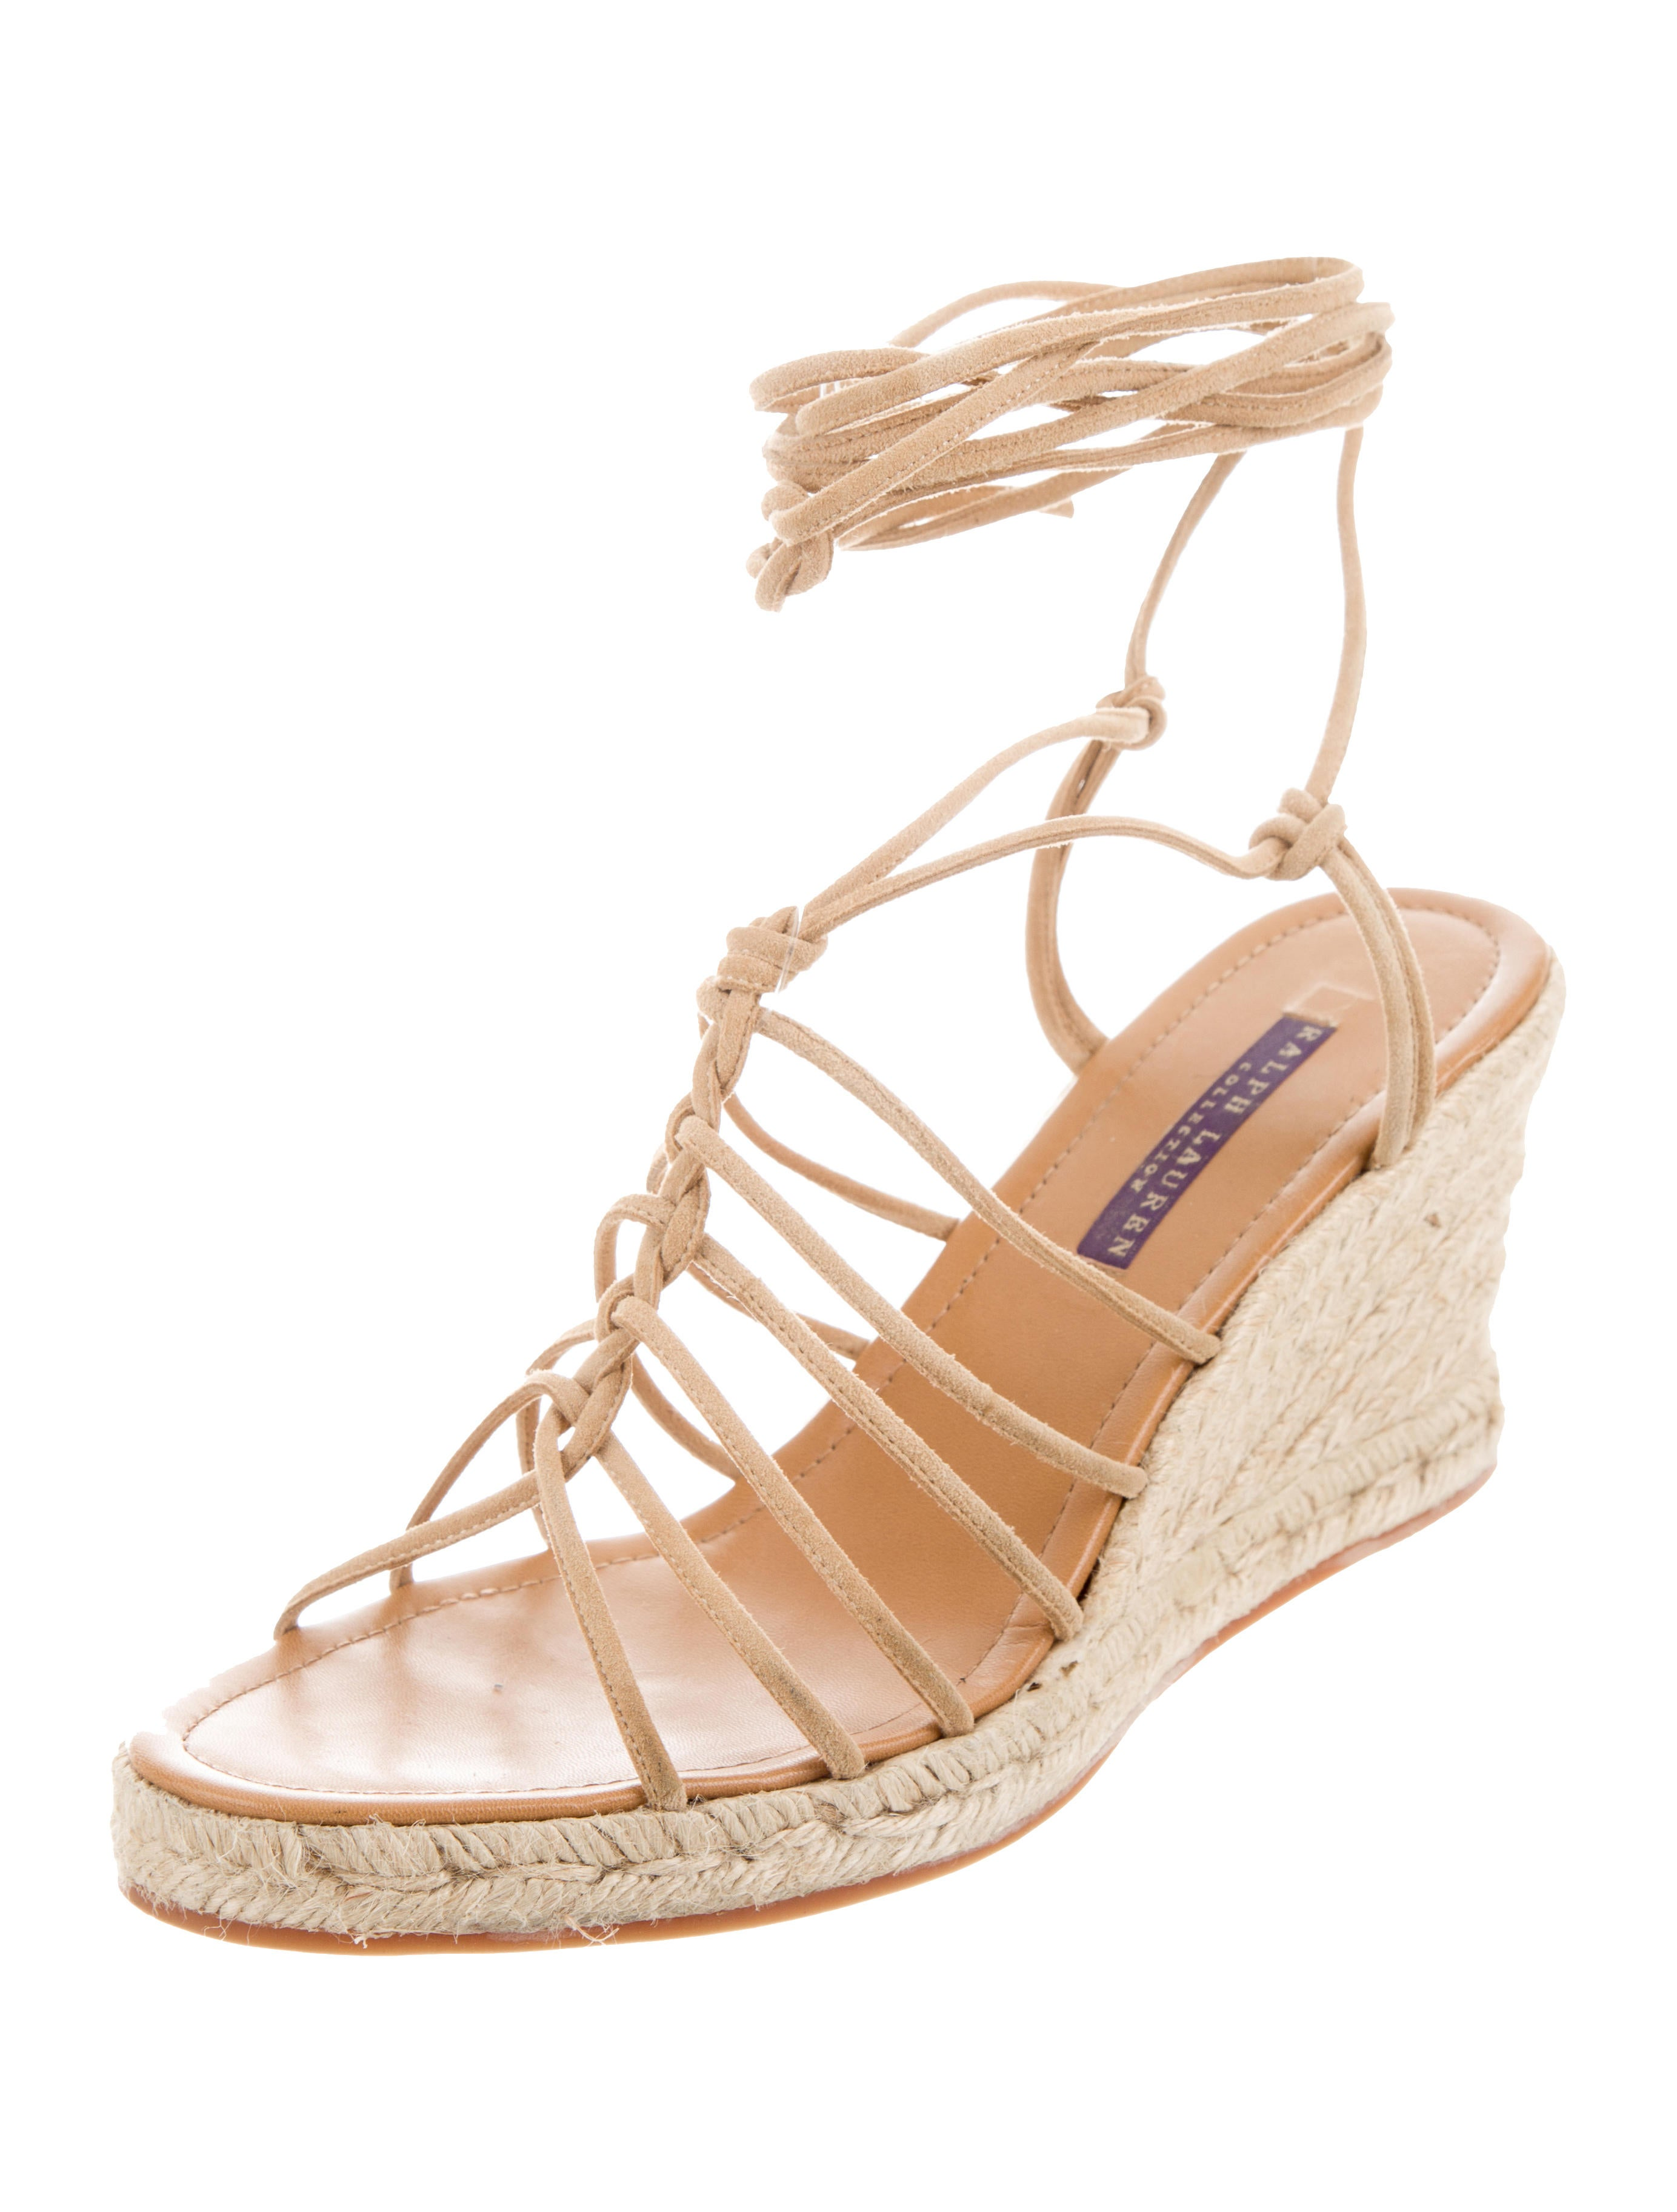 ralph lauren purple label espadrille wedge sandals shoes rlpl22124 the realreal. Black Bedroom Furniture Sets. Home Design Ideas